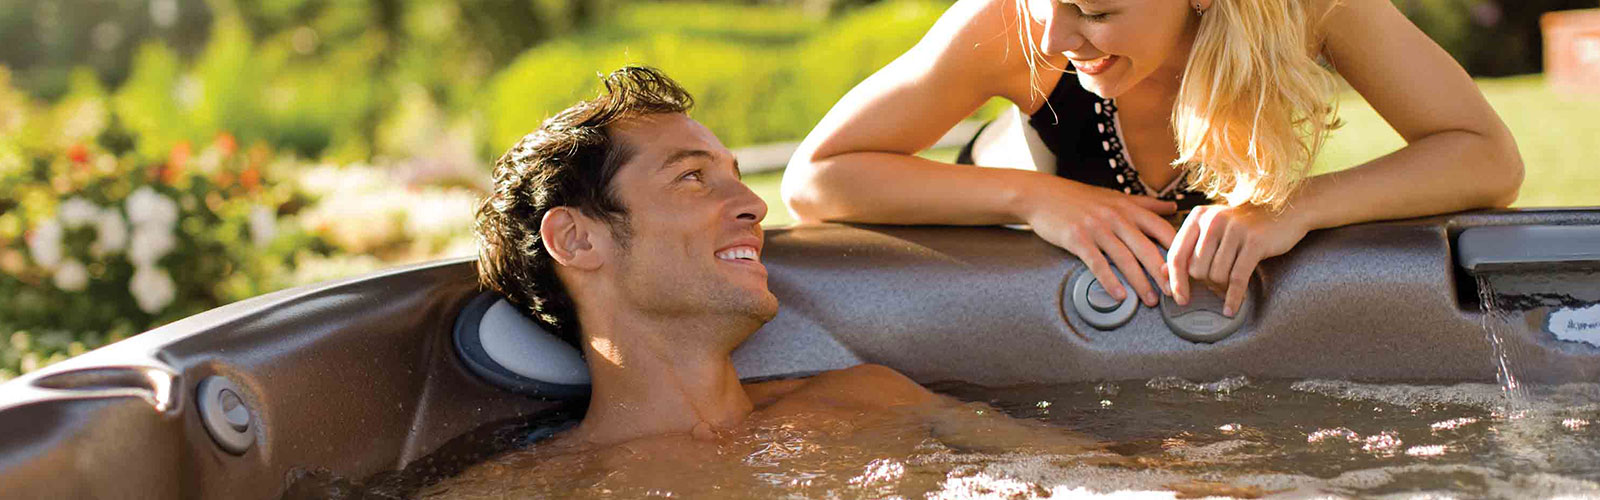 Spas and Hot Tubs for Sale in Grand Rapids and Holland MI at Zagers Pool and Spa